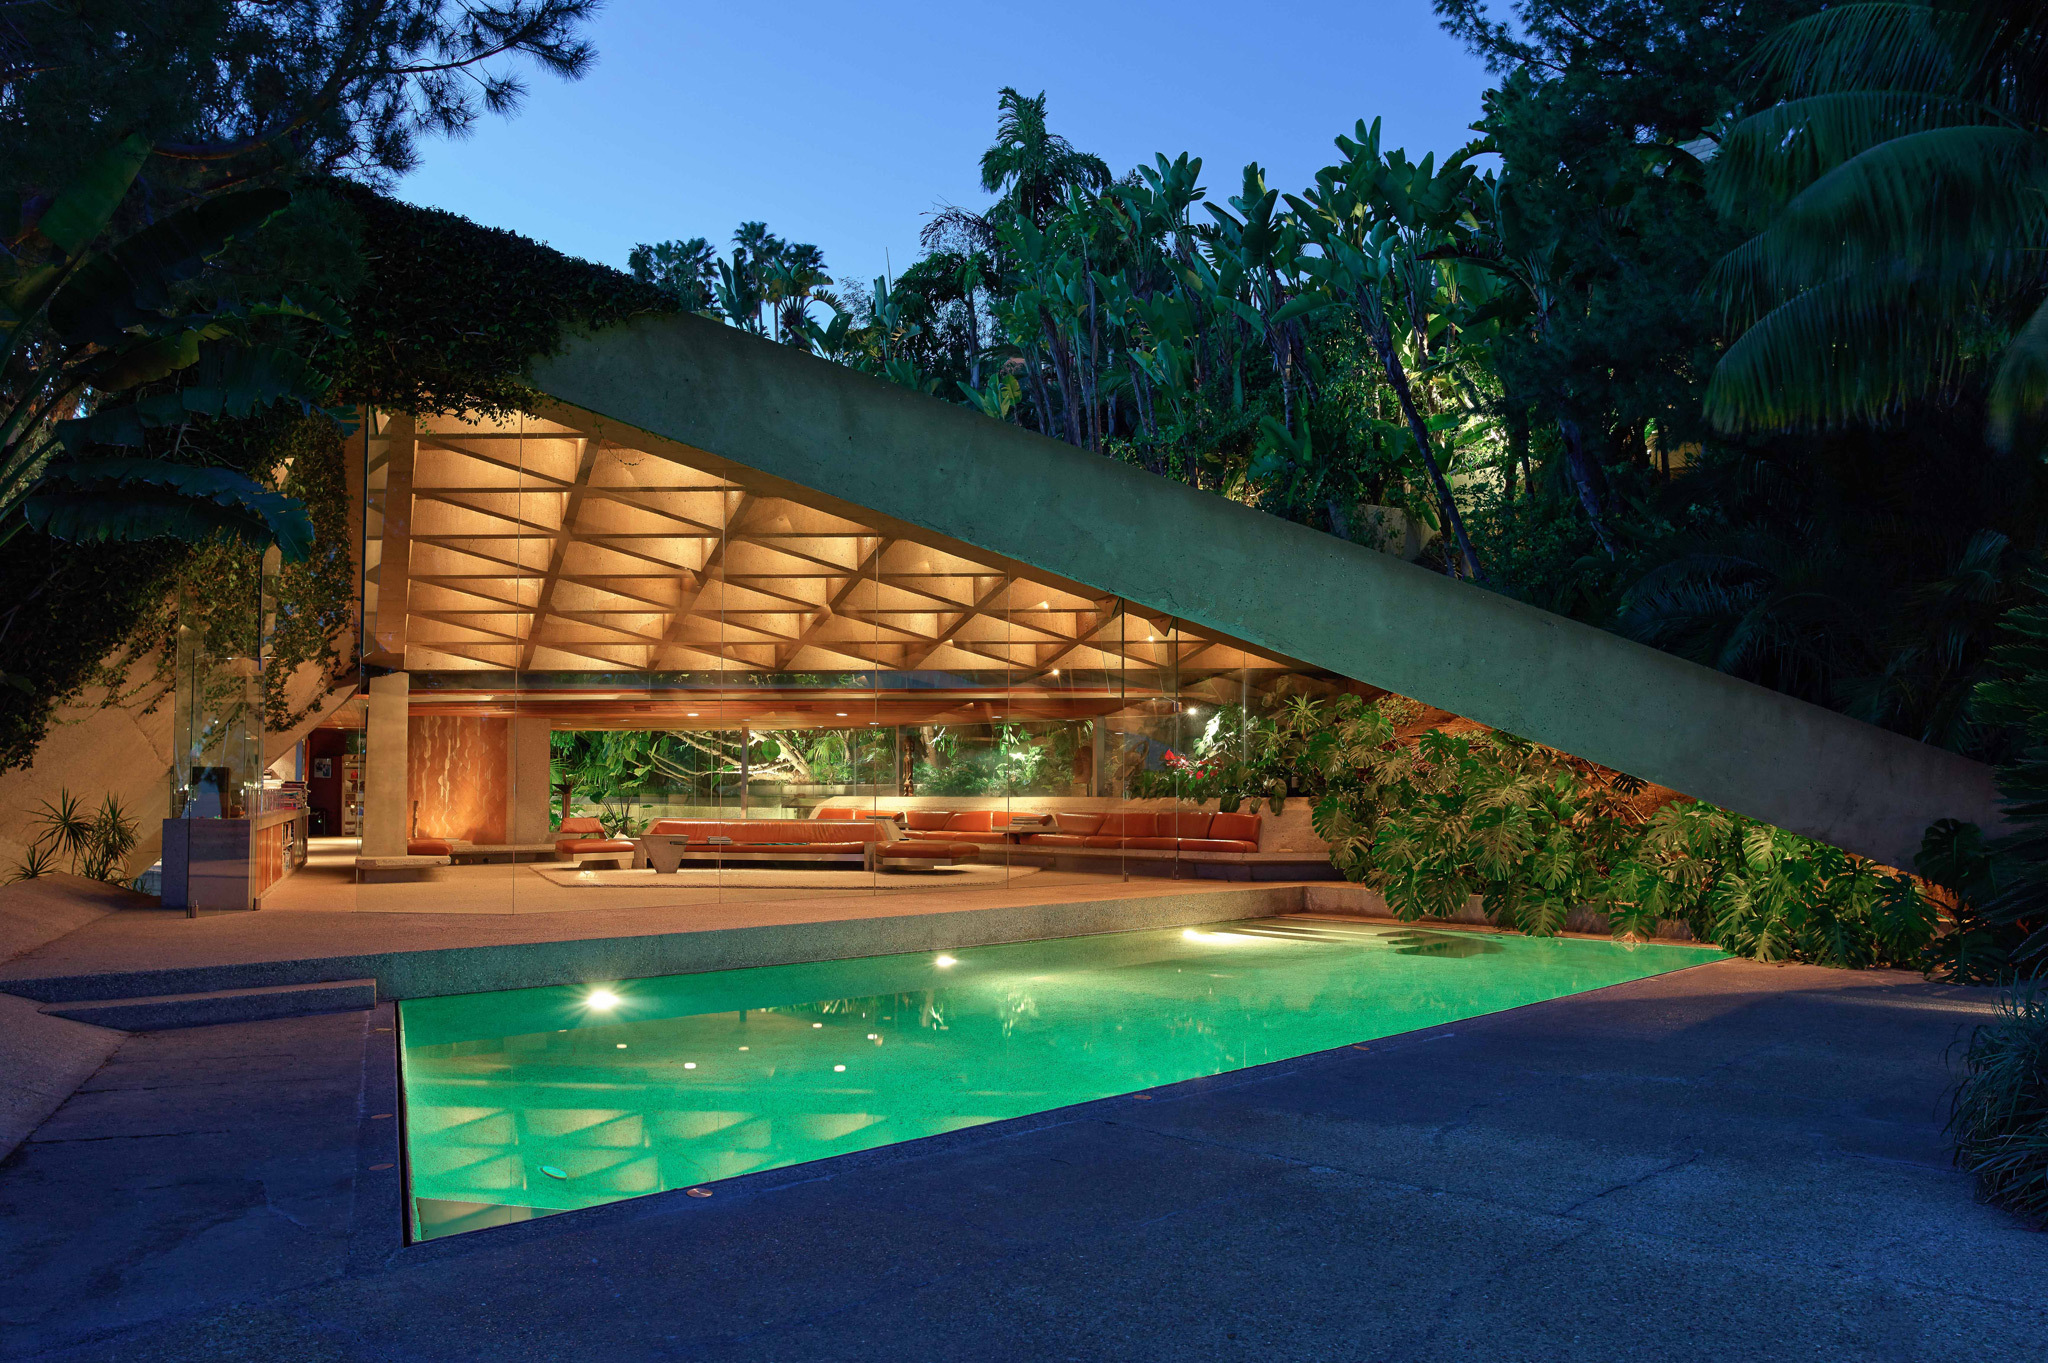 LACMA has been promised a John Lautner-designed sublime hilltop home